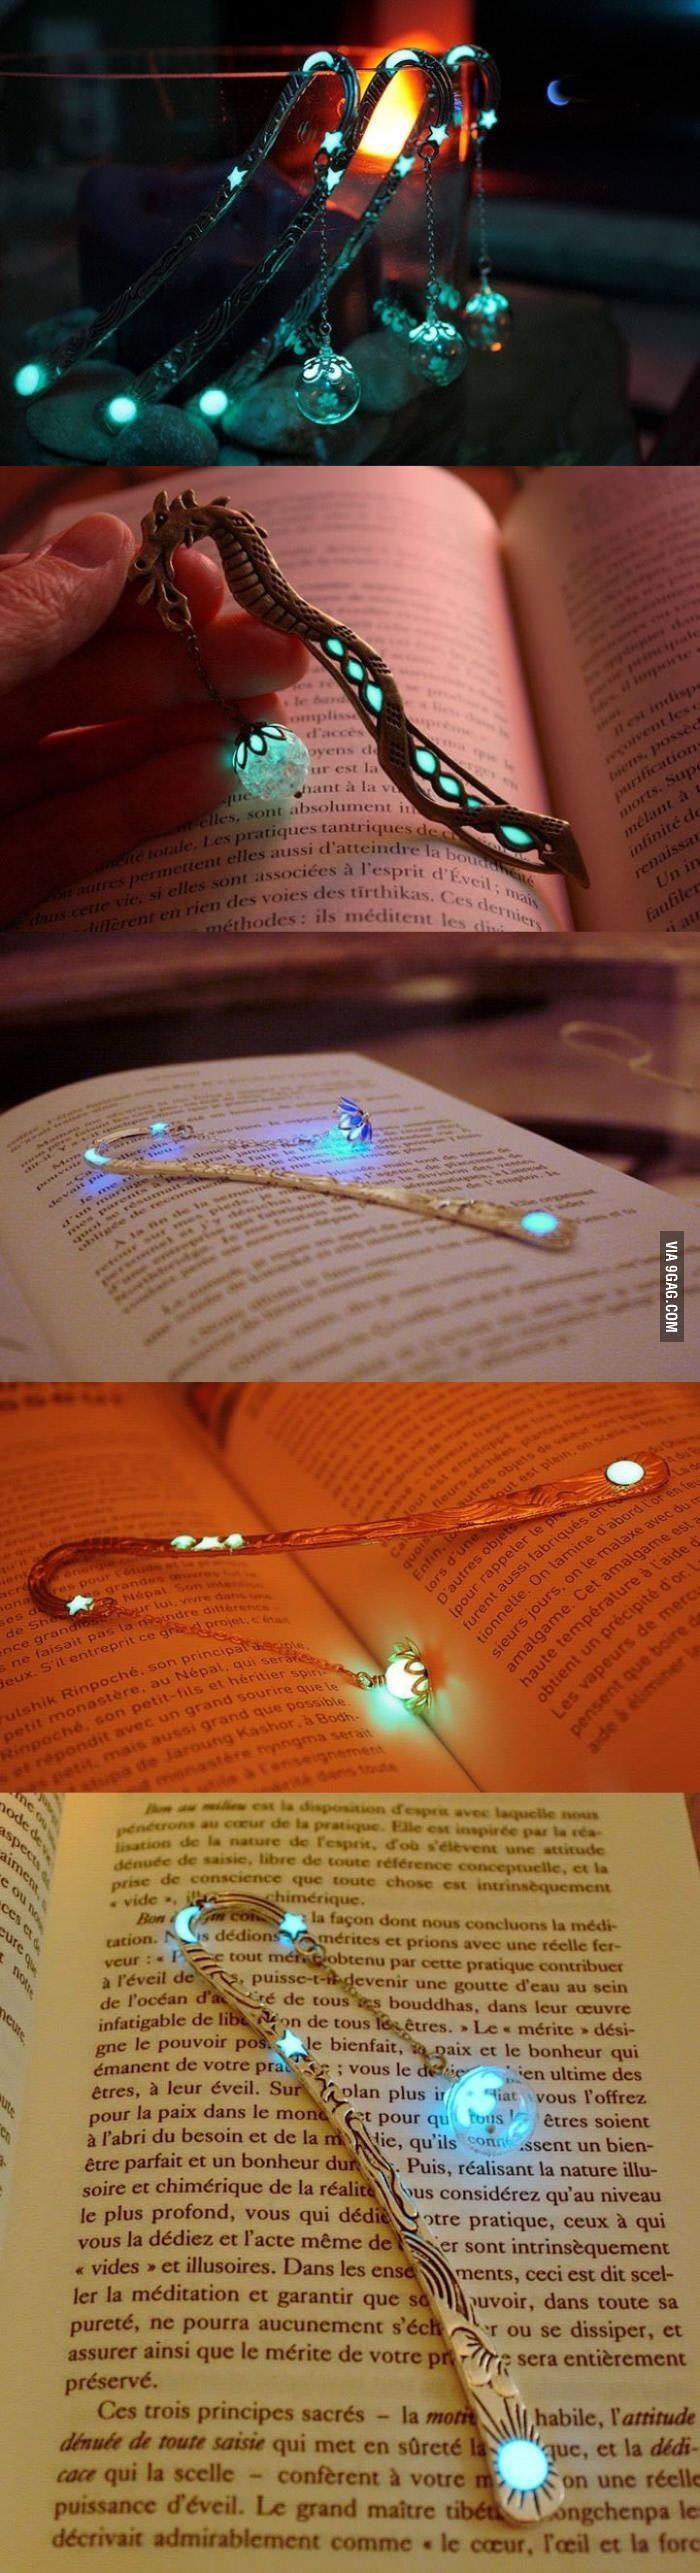 Glow-in-the-dark bookmarks that will certainly add a touch of magic to your read…  Glow-in-the-dark bookmarks that will certainly add a touch of magic to your reading – 9GAG              (adsbygoogle = window.adsbygoogle || []).push({});      Source  by  11A16    I do not take credit for the images in this post. What I do accept and recognize is that I found something and brought it you.    Home decorating is an expression between art, creativity & passion. I believe that the mo..